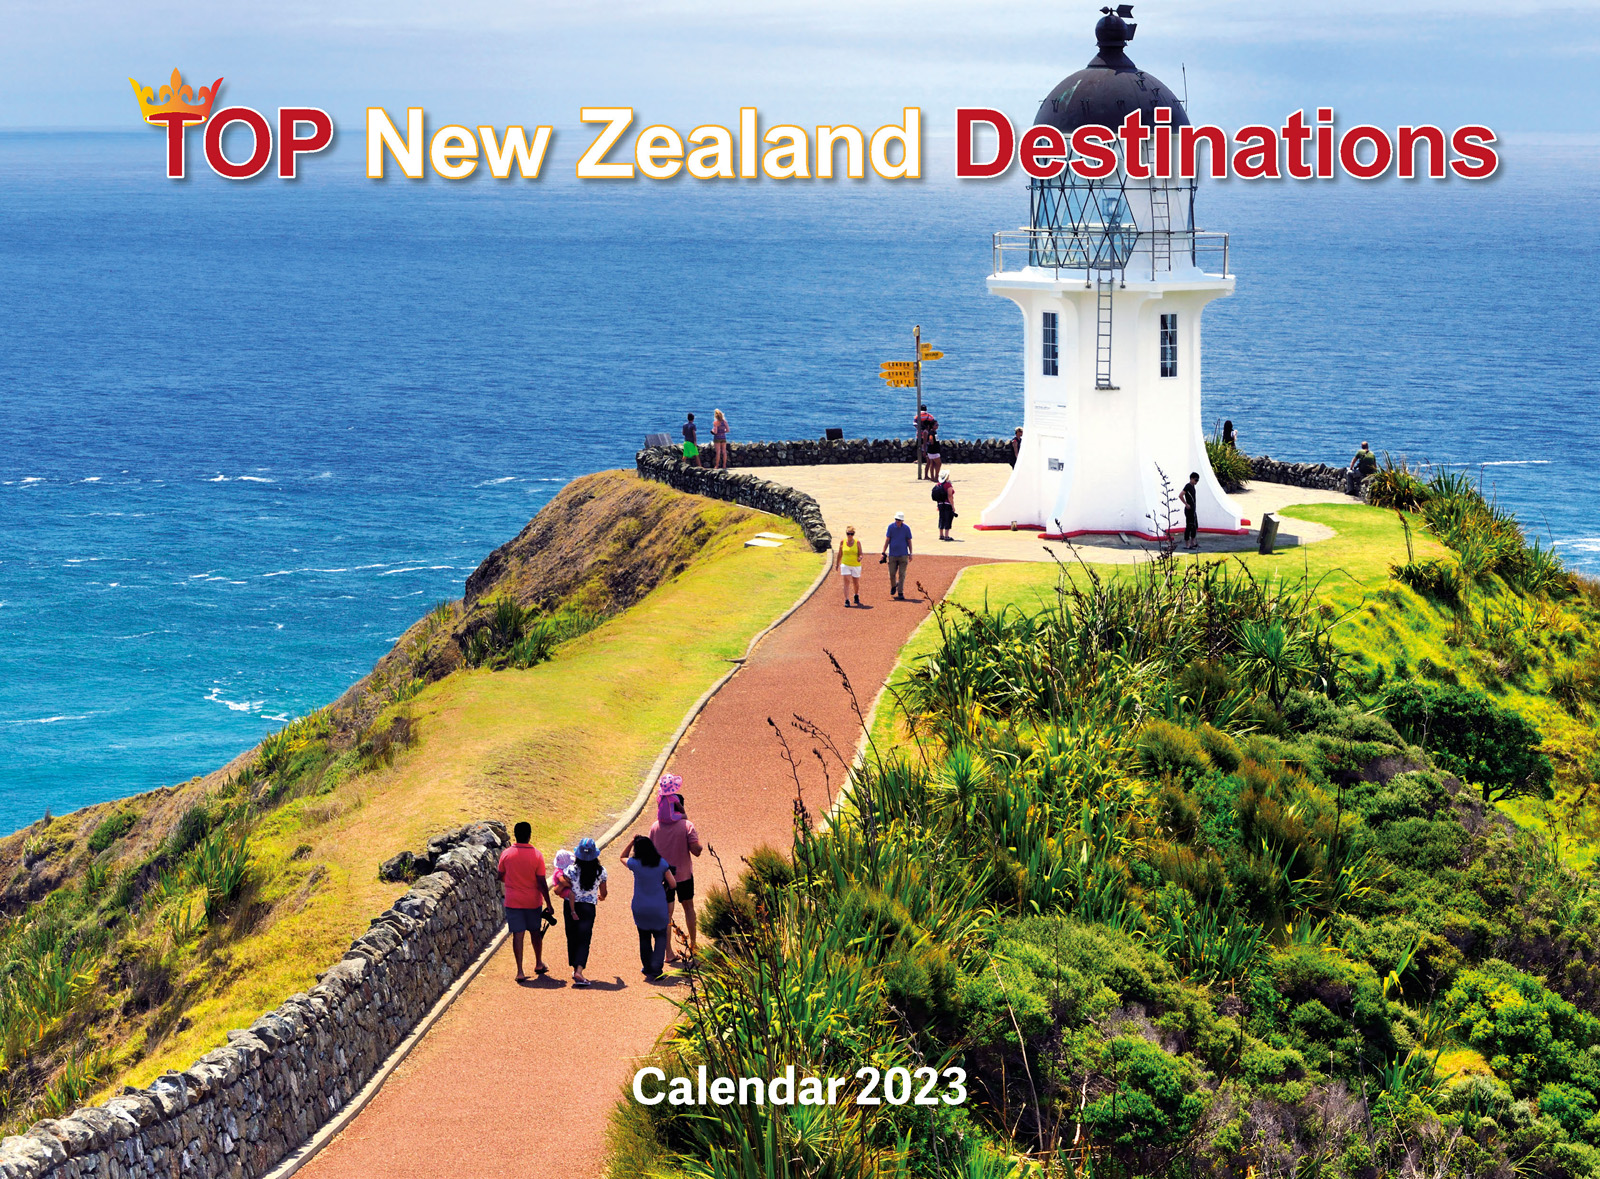 Top New Zealand Destinations 2021